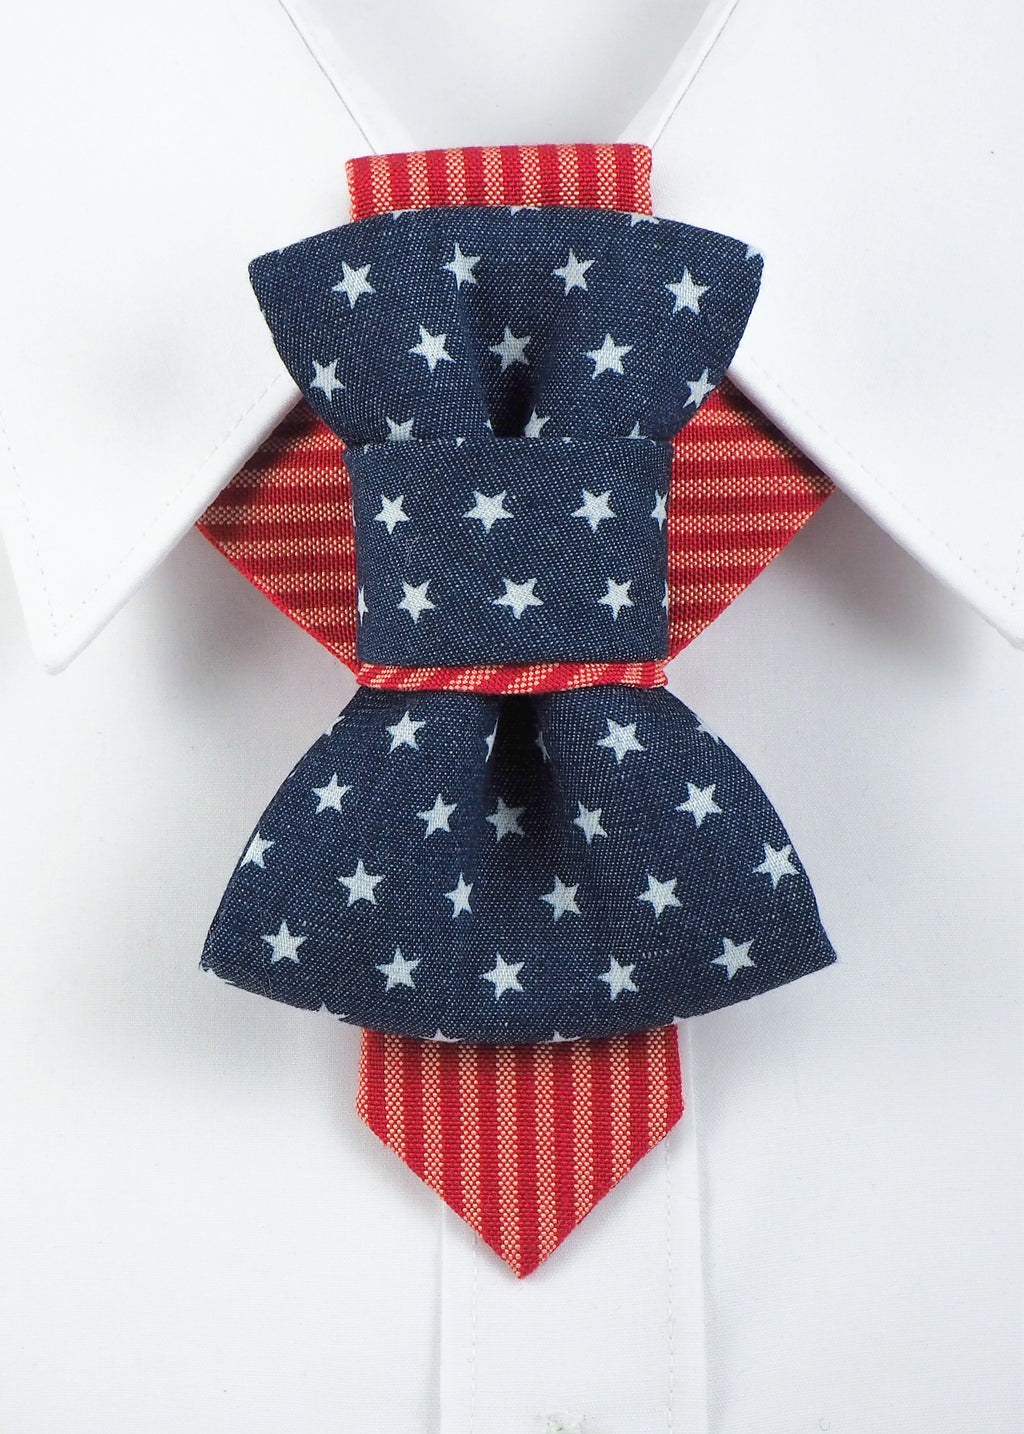 AMERICA -  Ruty Design - bow tie jewelry, Bow tie, Necktie, Ruty tie, Hopper bow tie, Vertical bow tie, Hopper tie, Men's Bow Ties,  men's accessories,  Original bow tie, Ruty hopper is original vertical bow tie, Fashion Bow Tie, Fancy bow tie, Žiogas